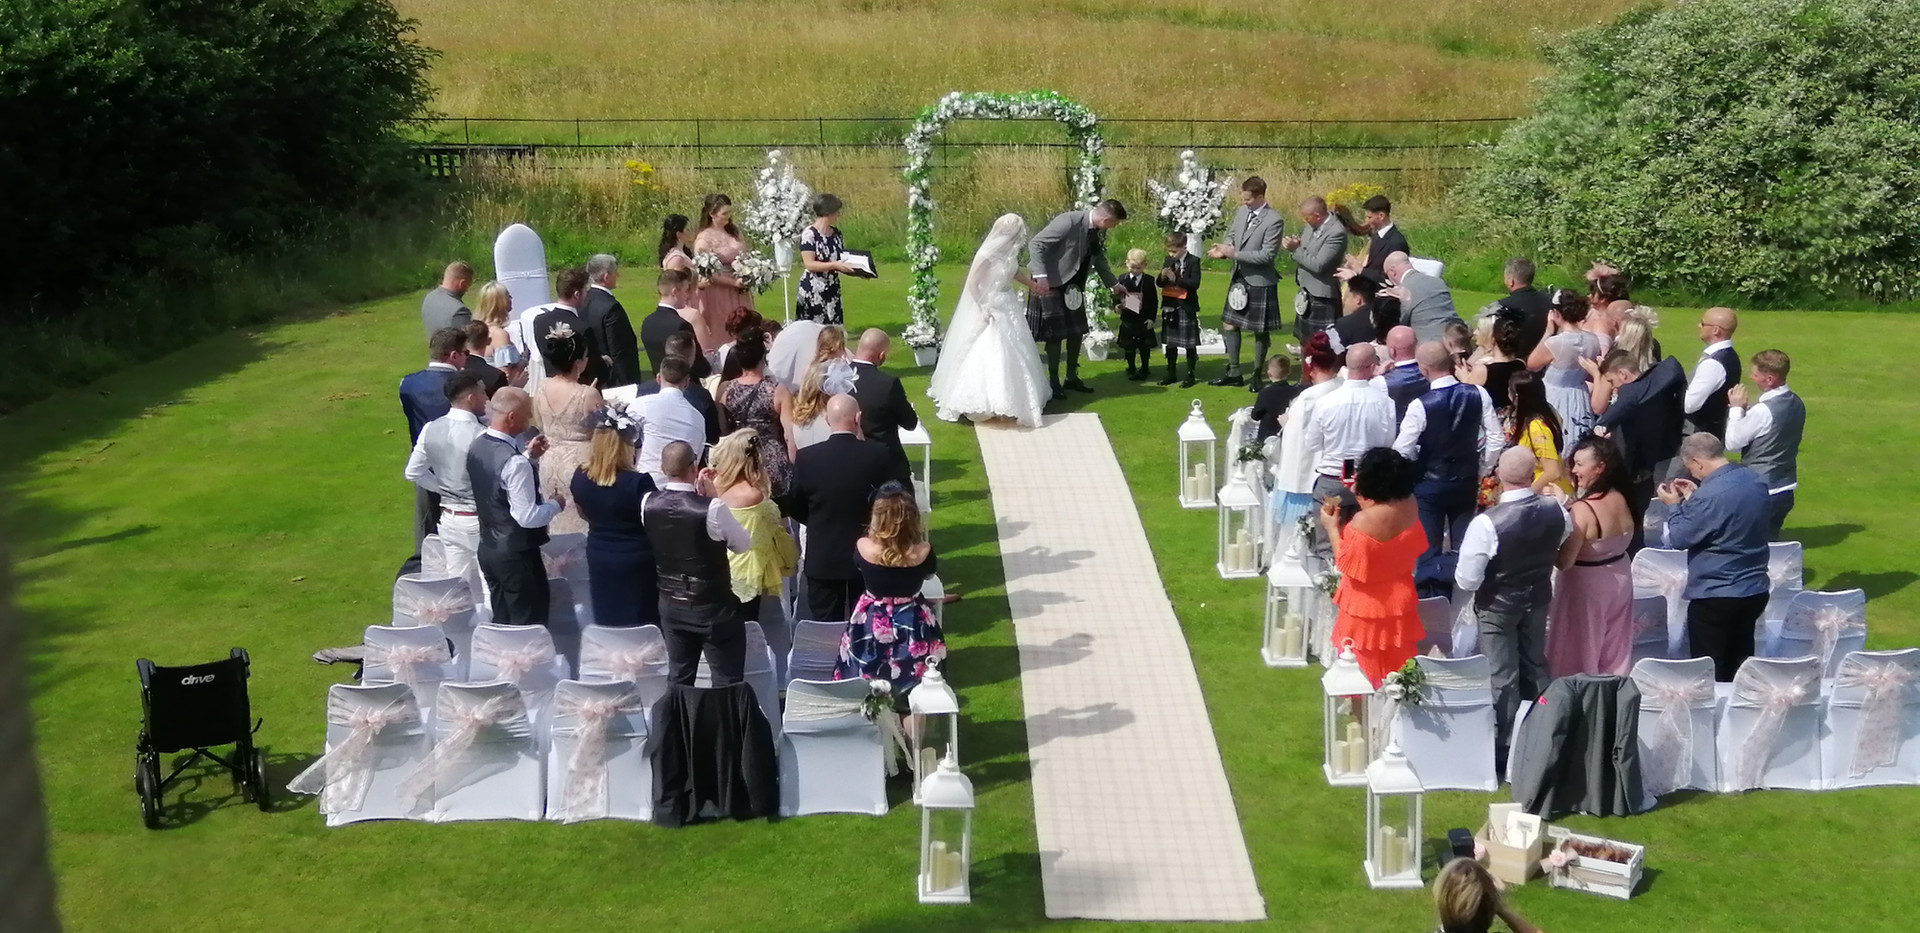 Wedding Archway and Aisle Lanterns